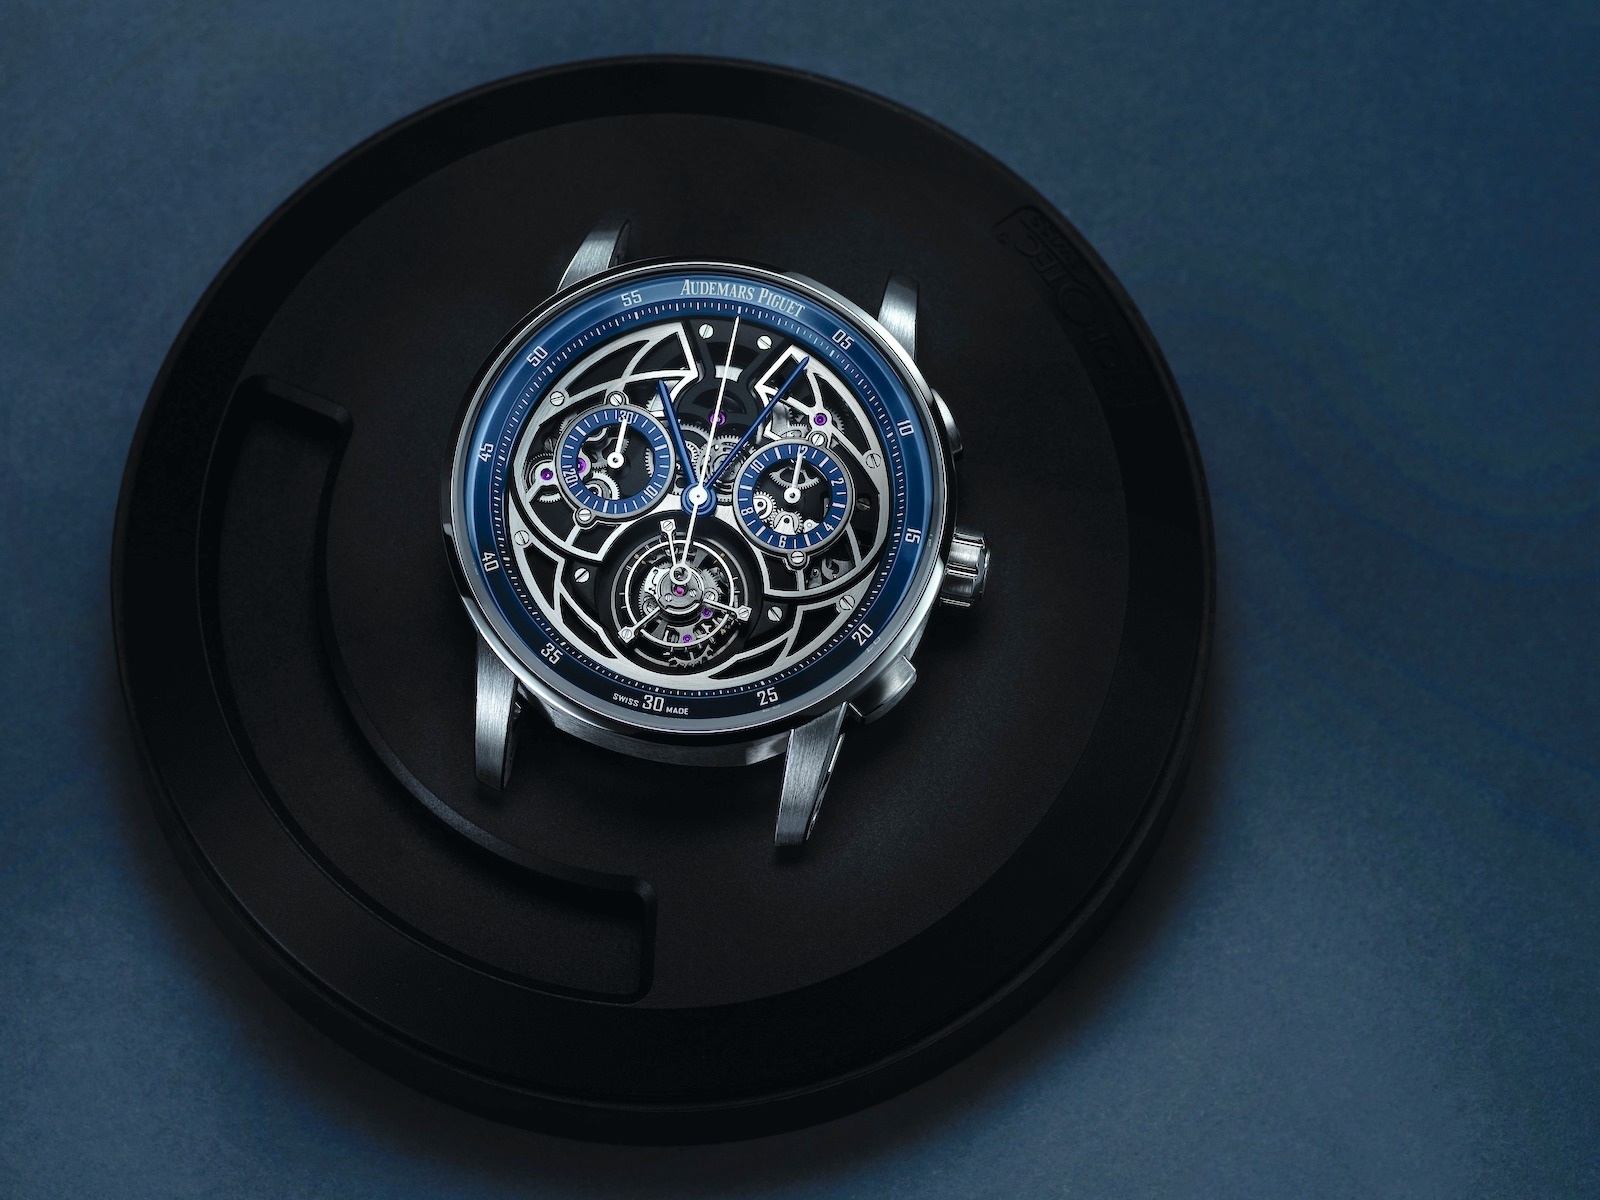 Audemars Piguet Code 11.59 Selfwinding Flying Tourbillon Chronograph - art